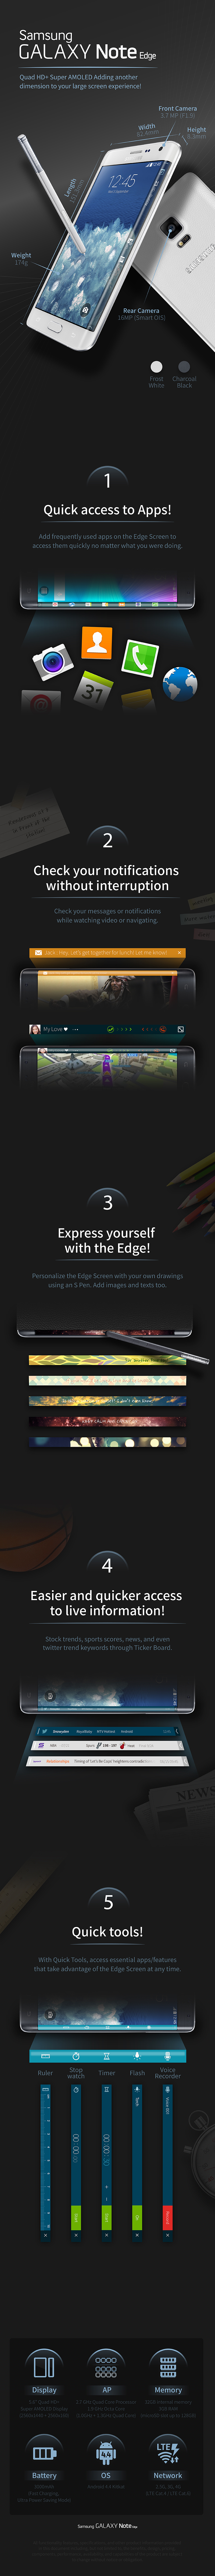 Galaxy-Note-Edge-Infographic